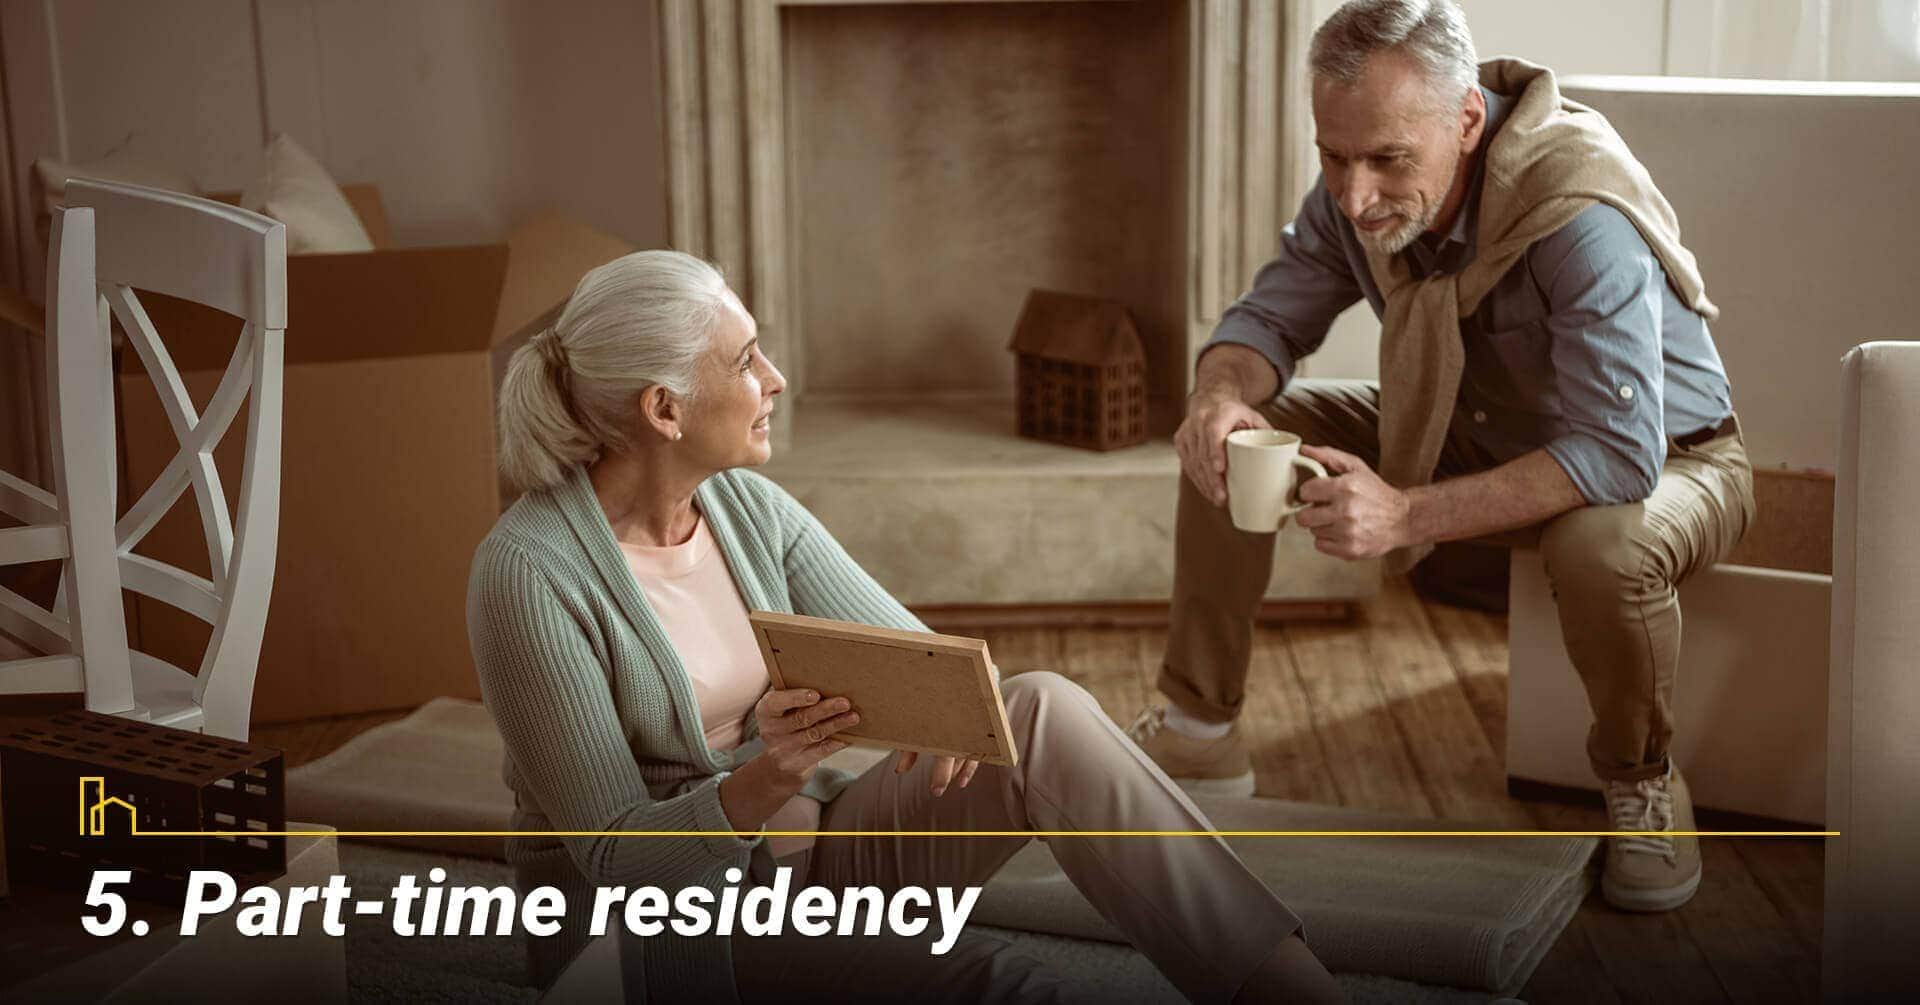 Part-time residency, splitting your time as a townhome resident